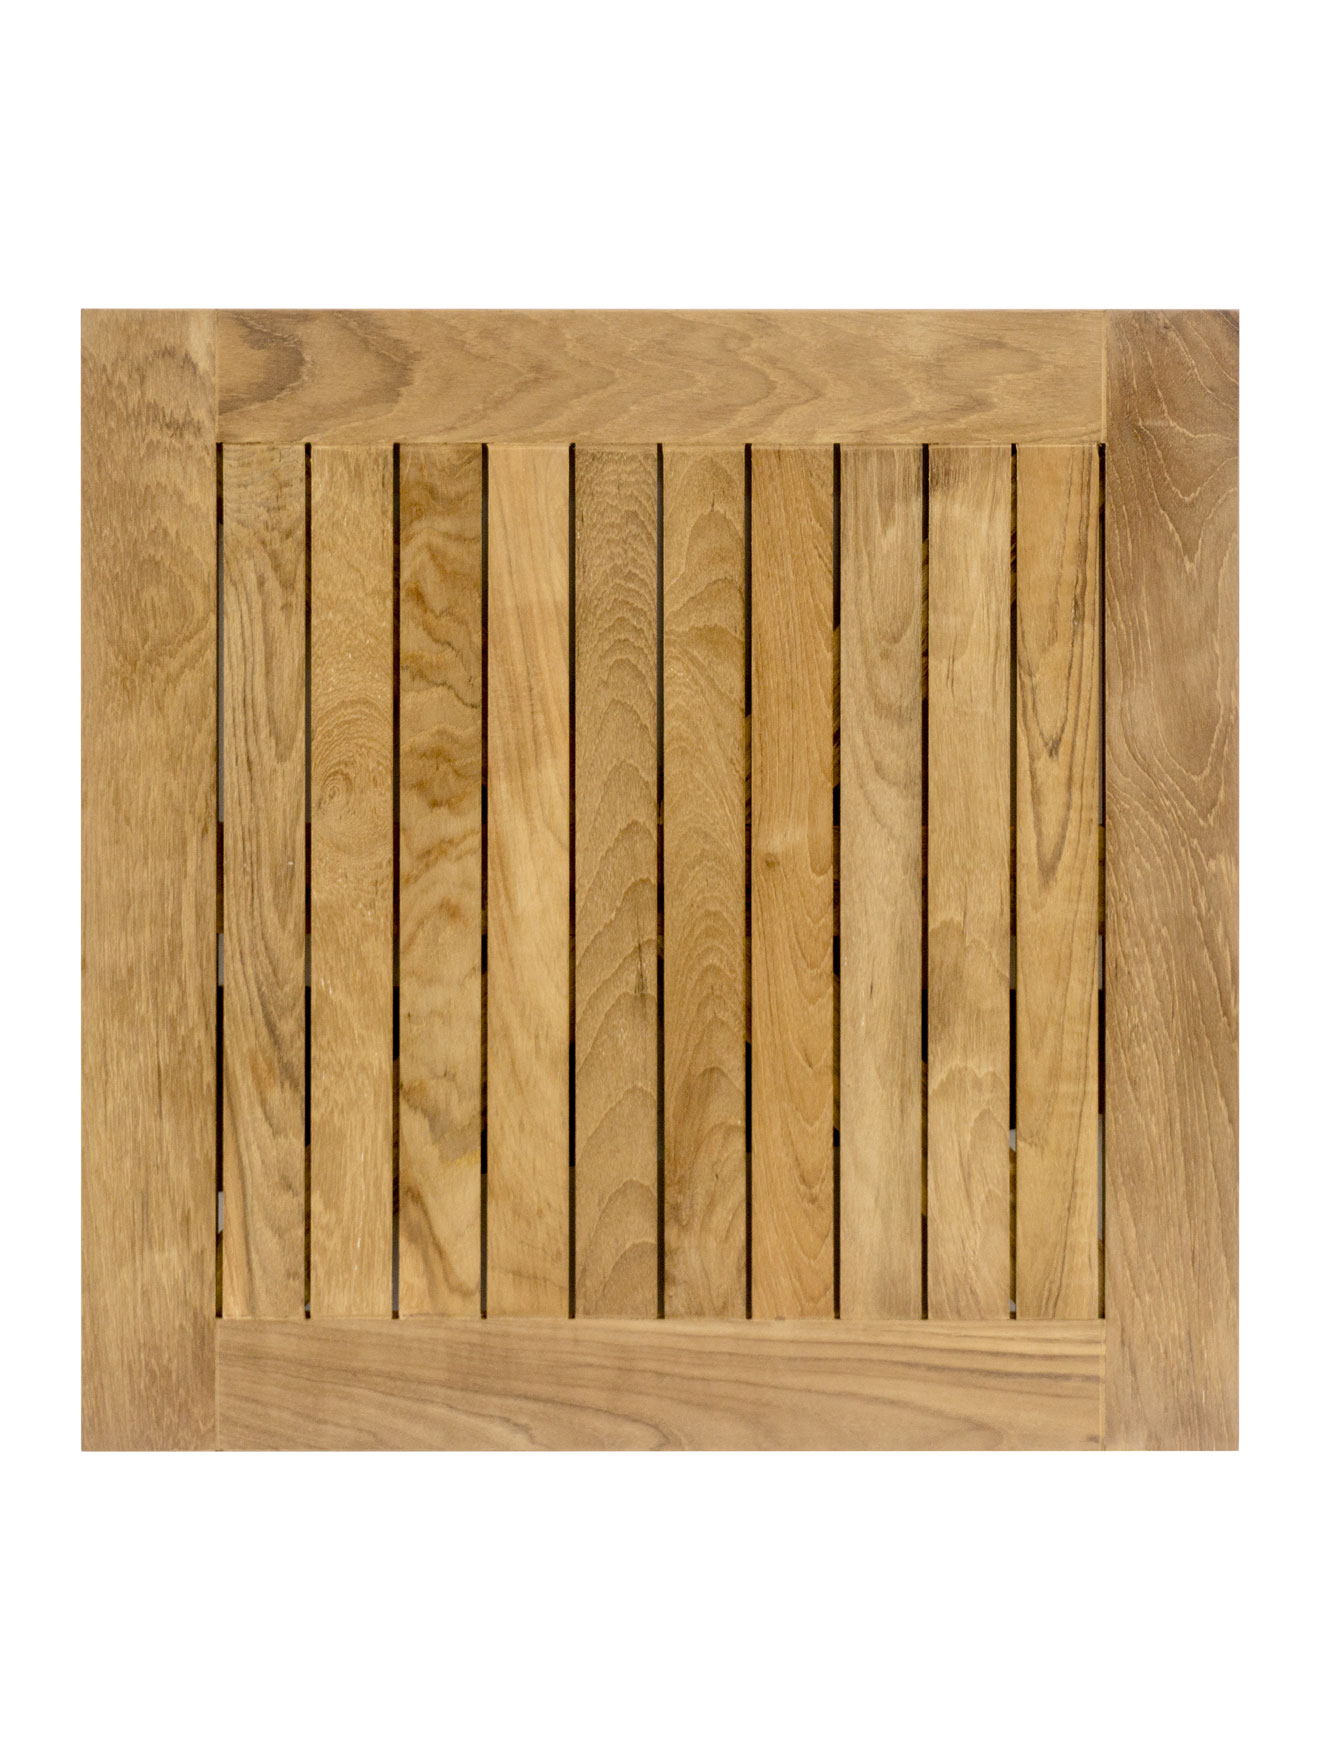 Real Teak Wood Square Indoor/Outdoor Table Top Picture 3